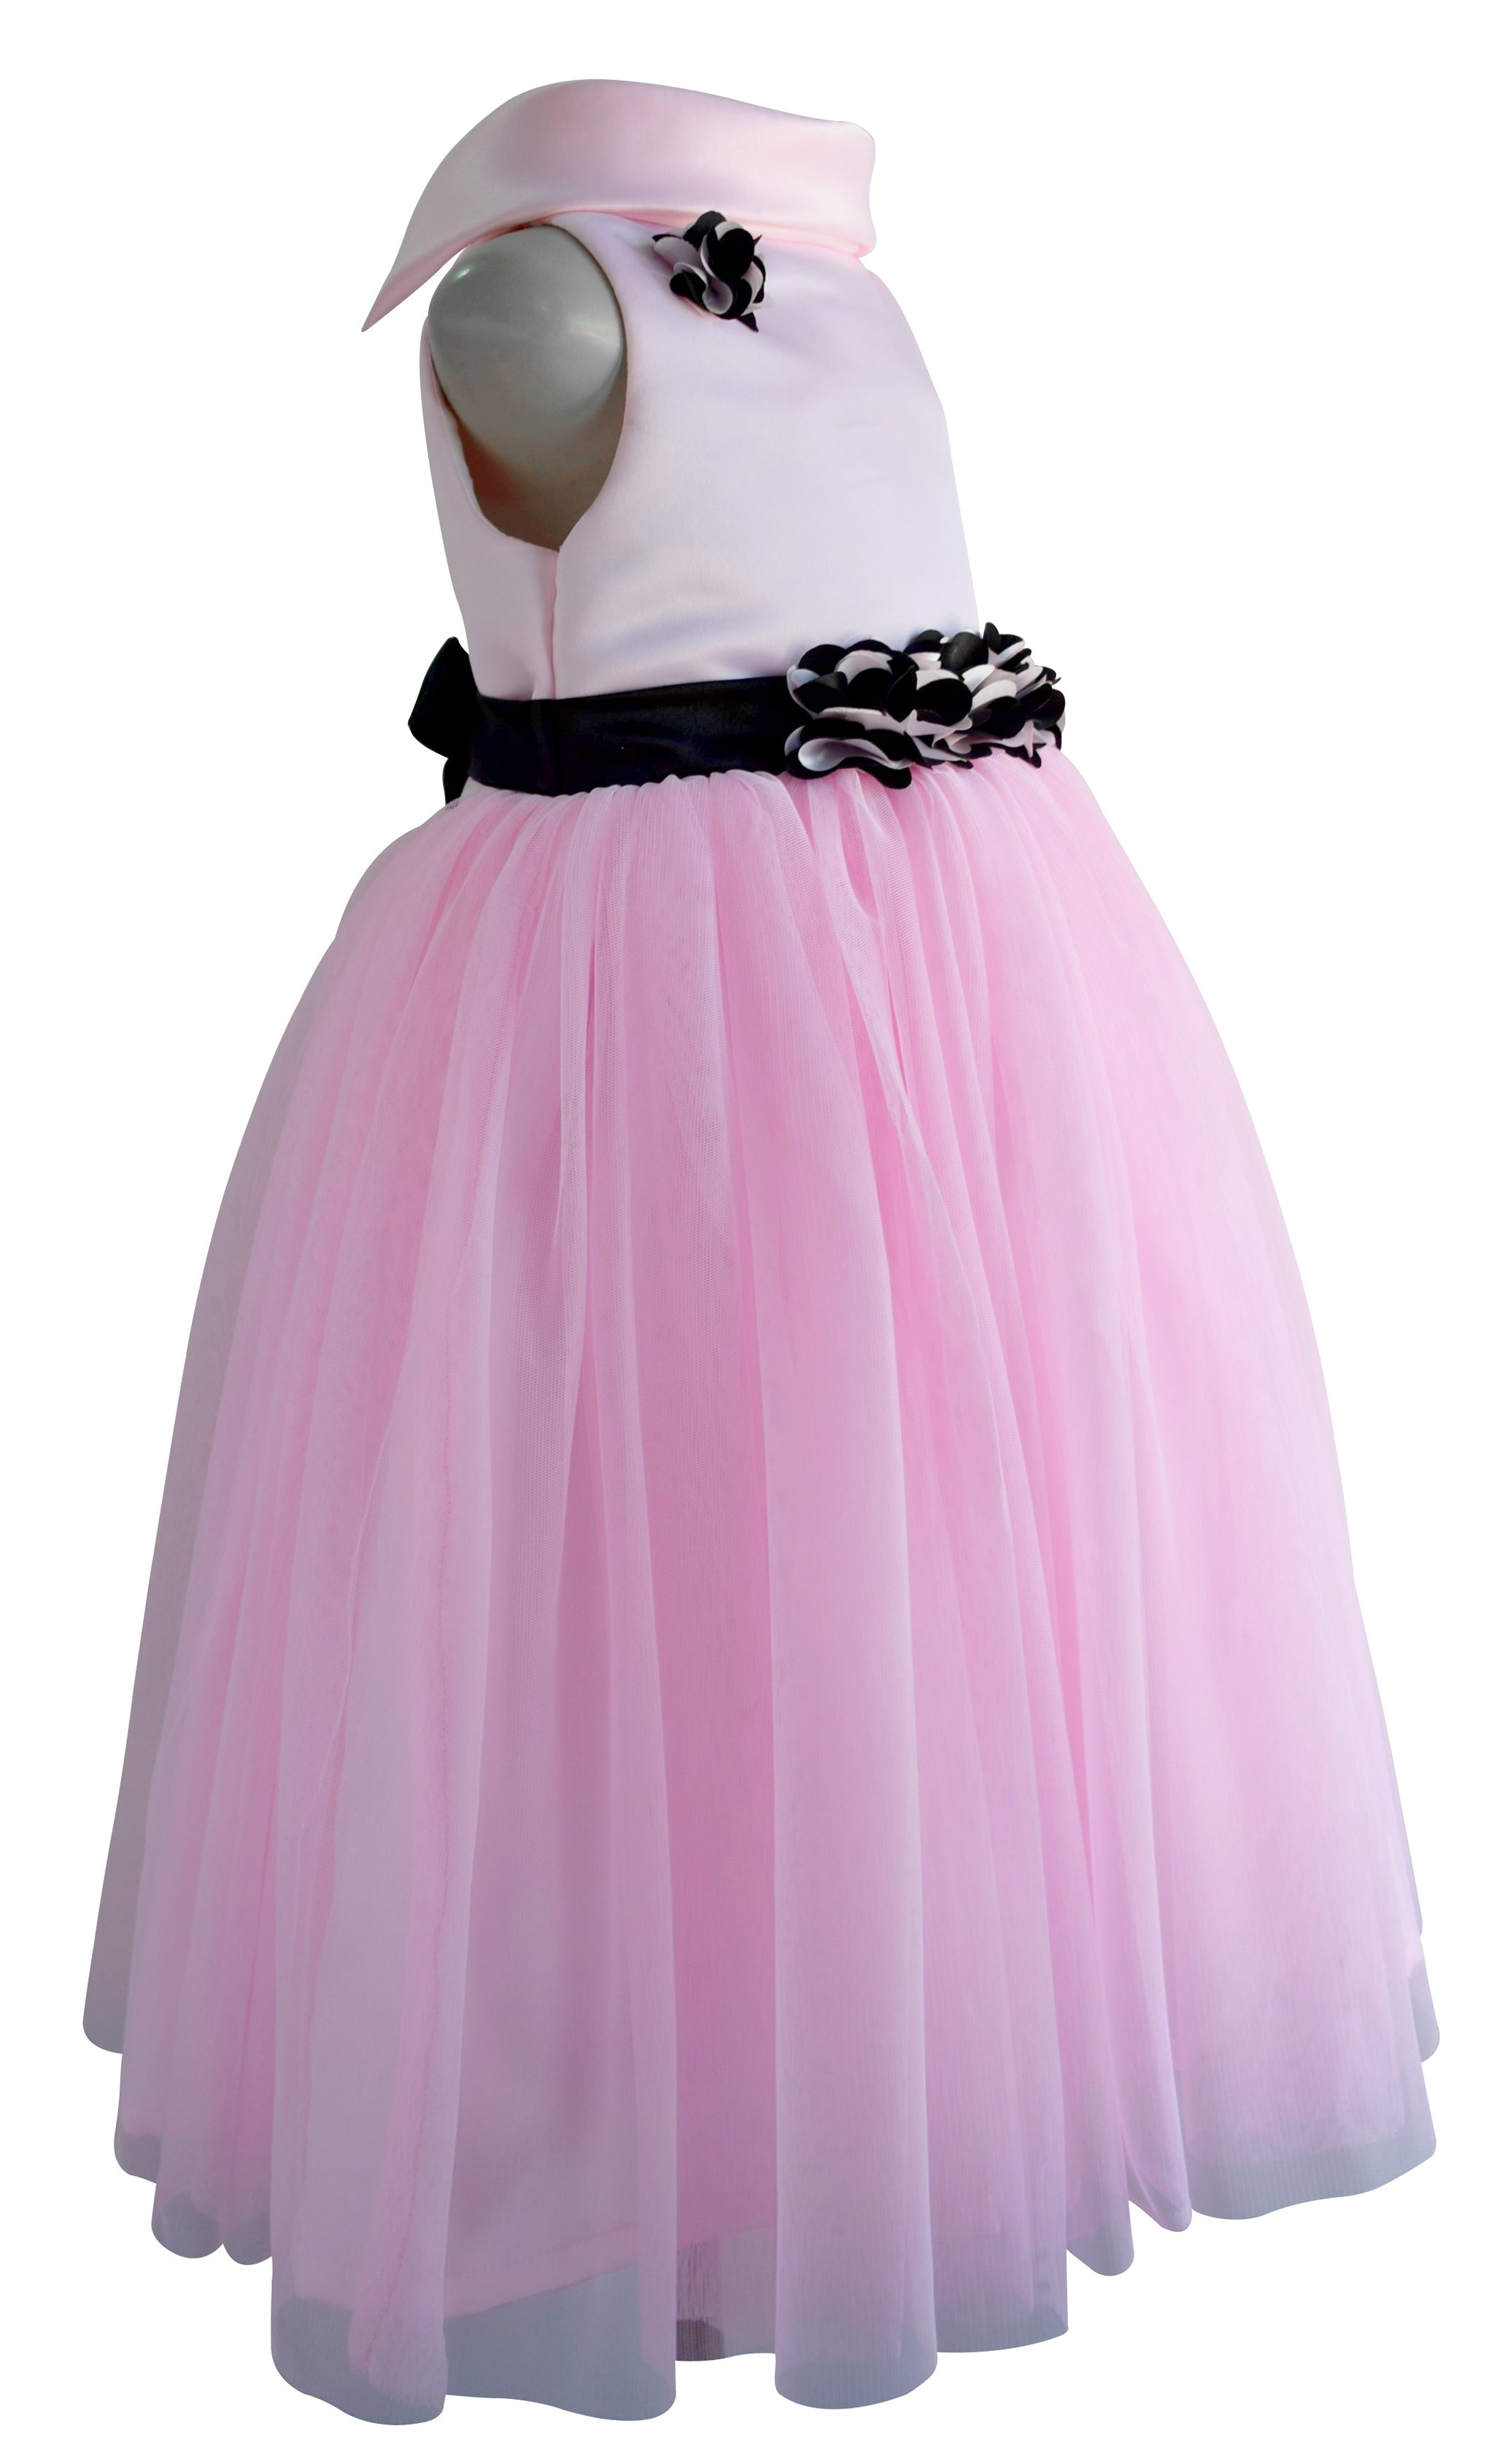 838d302cf Buy Girls party wear dresses online|birthday dresses|dresses for girls